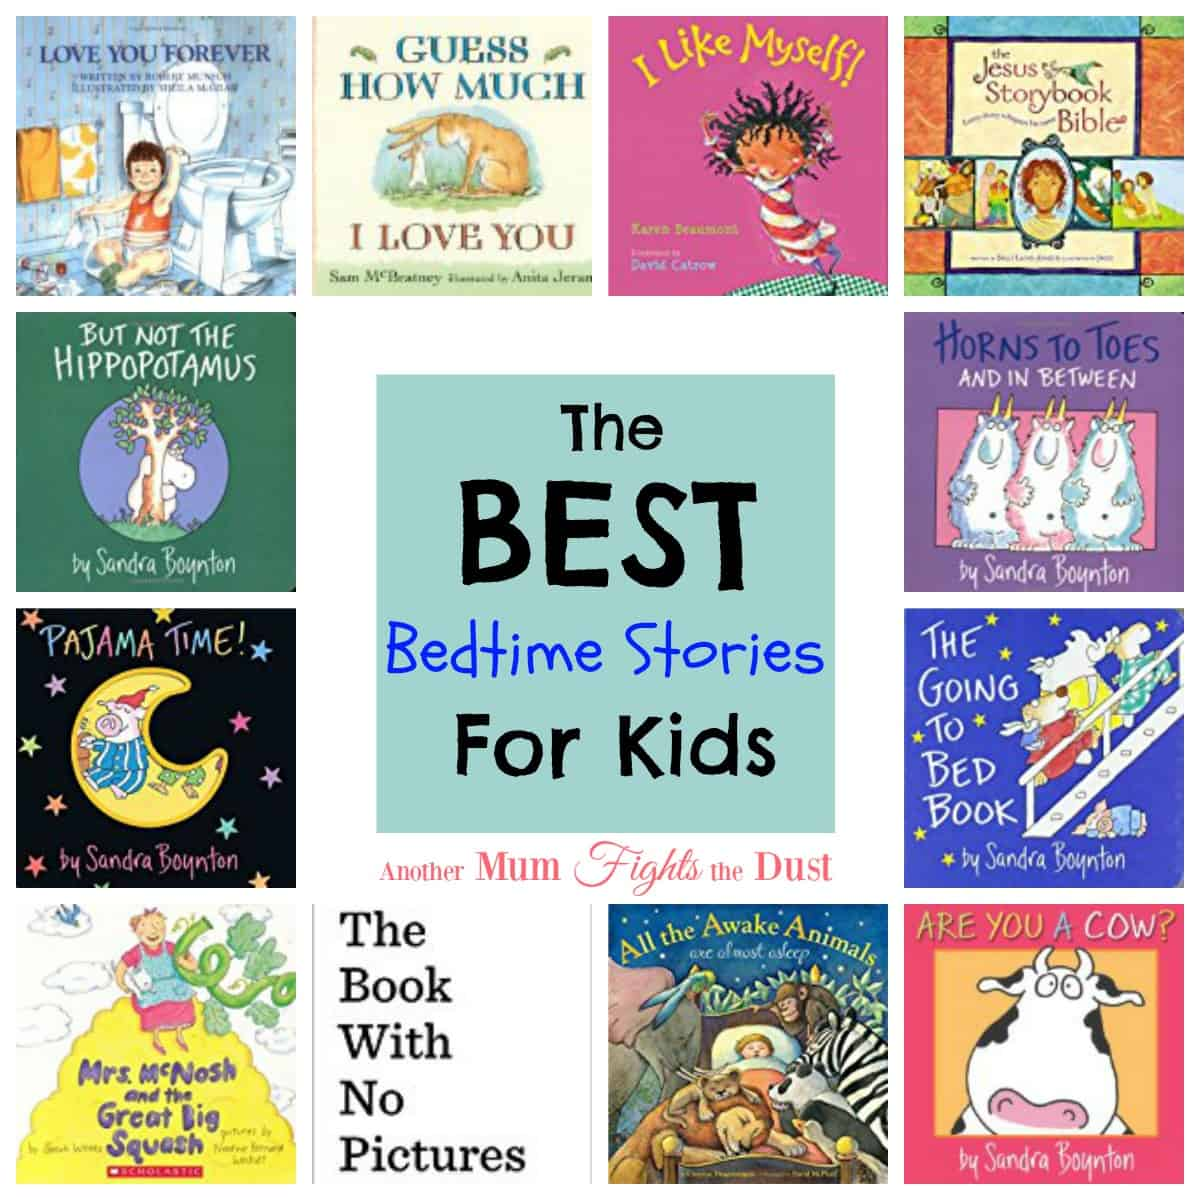 Best Bedtime Stories for Kids - Another Mum Fights the Dust